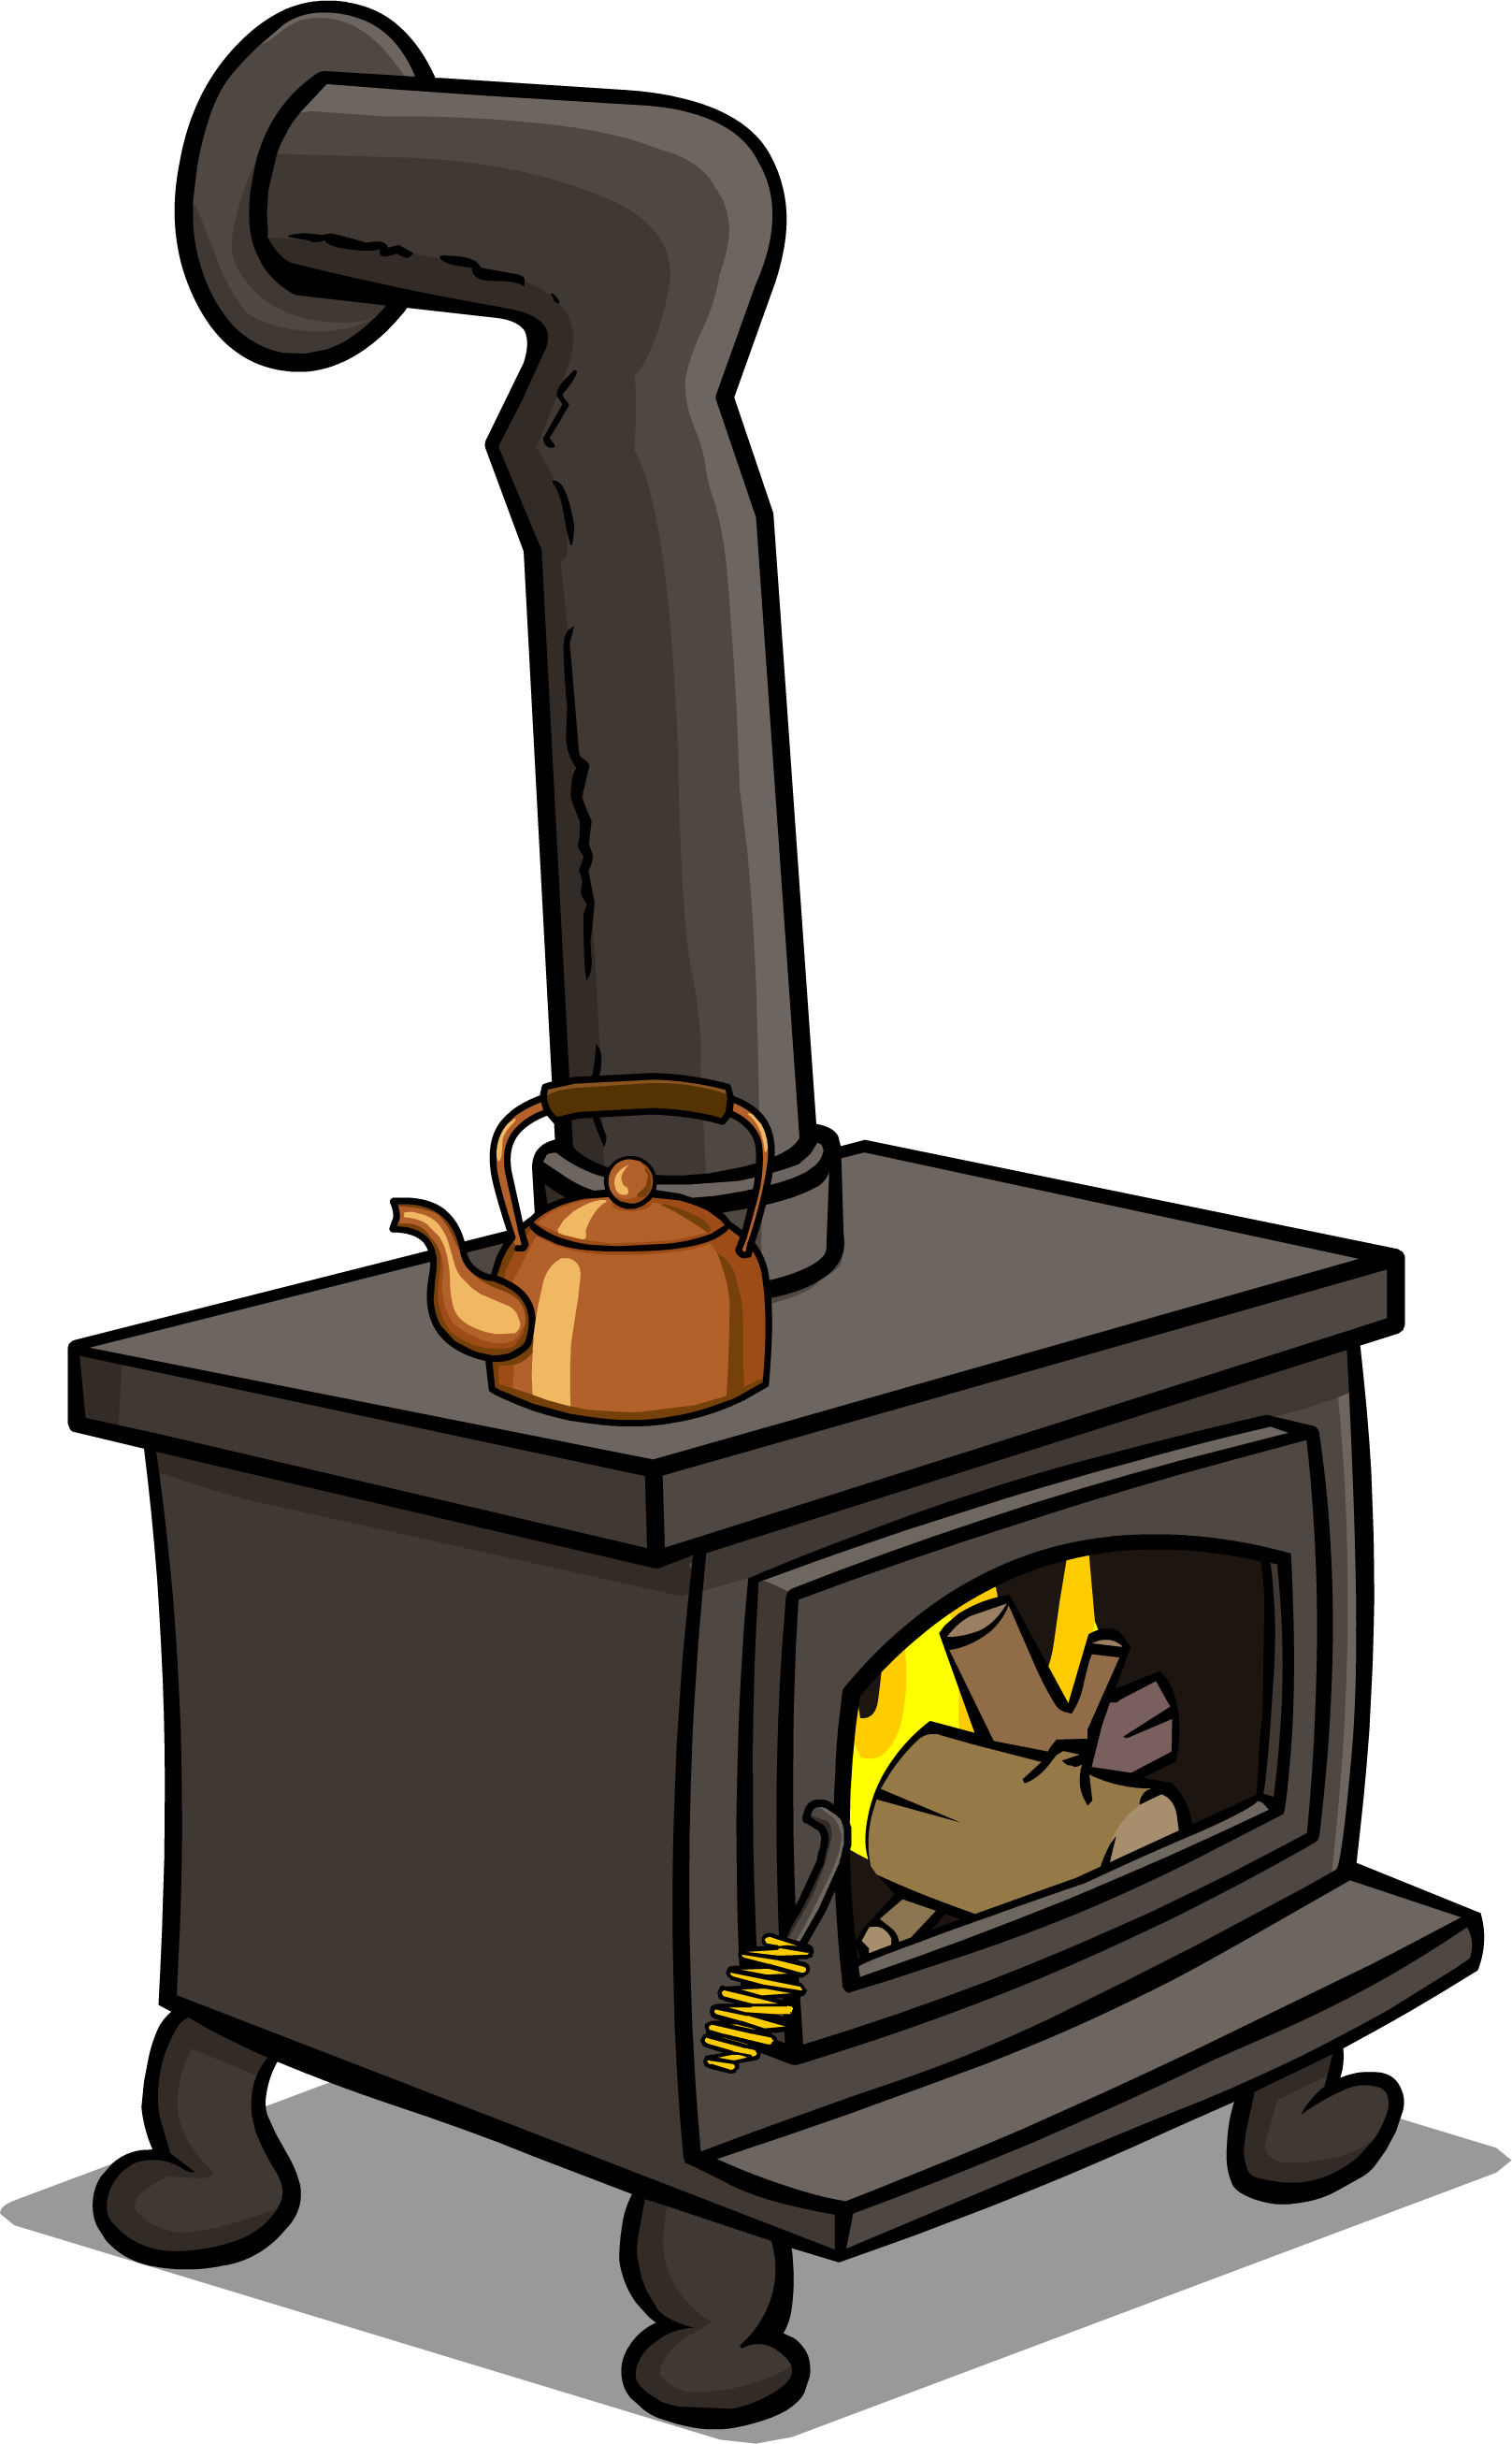 Win clipart wood. Stove cliparts free download